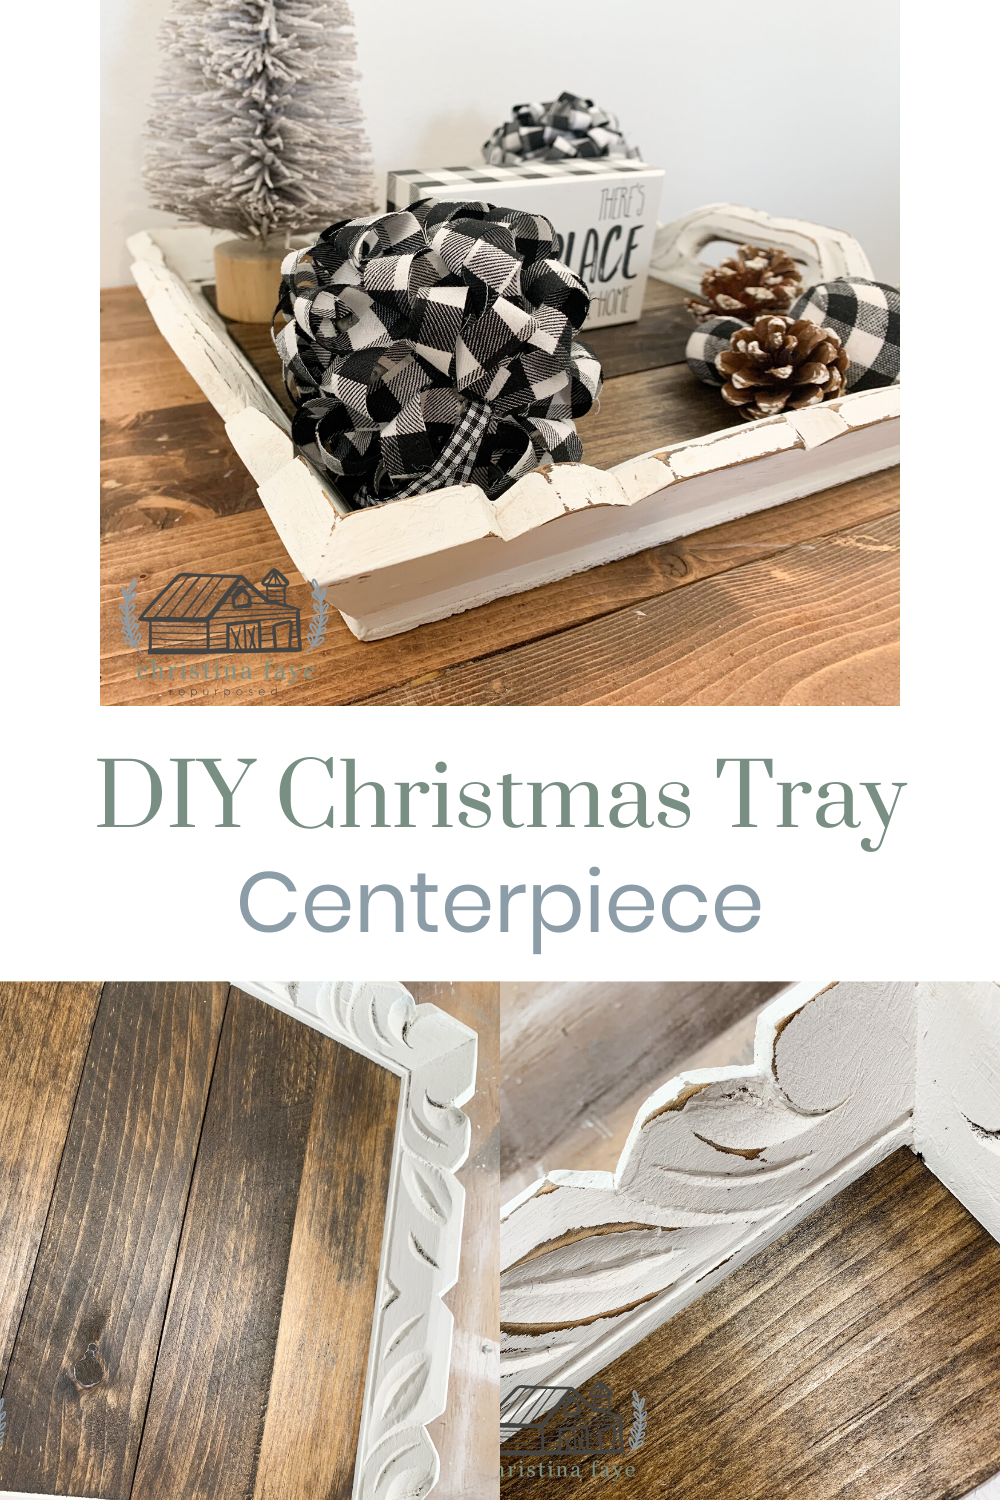 DIY Christmas Tray Centerpiece - Christina Faye Repurposed